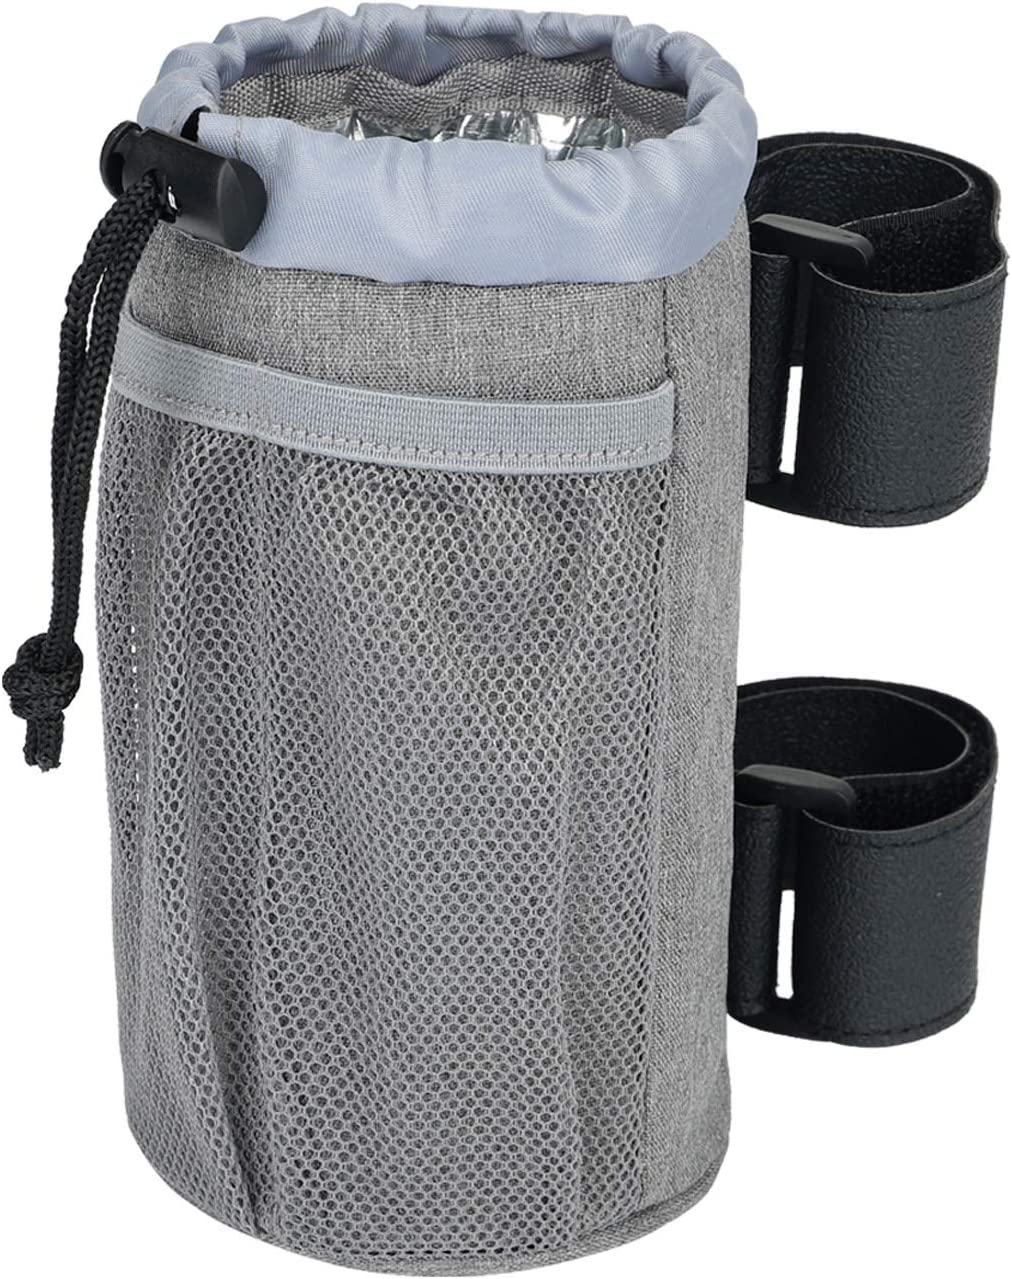 CHENGDE Bike Cup Holder, Water Bottle Holder, Bar Cup Holder, Oxford Fabric Drink Cup Can Holder for Bike,Boat,Scooter,Wheelchair,Motorcycle,ATV,Walker,Golf Cart,RV and Camper, Gray